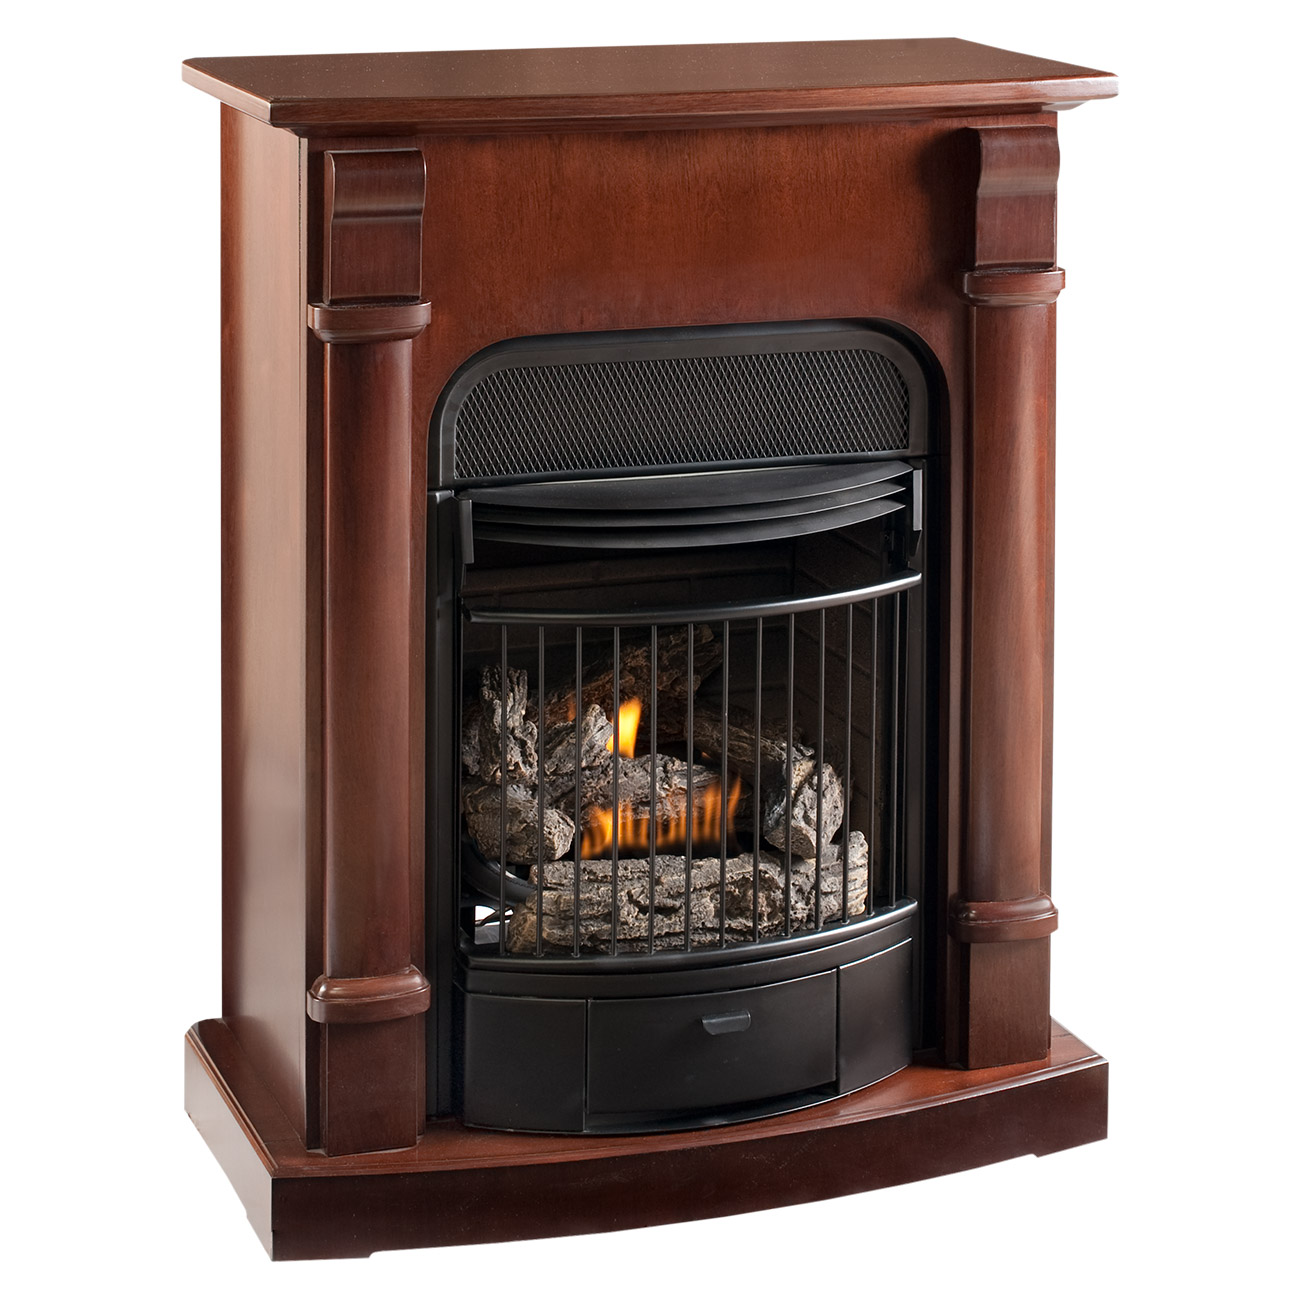 Lowes Gas Log Fireplace Inserts Ventless Fireplace Model Edp200t2 Ja Procom Heating